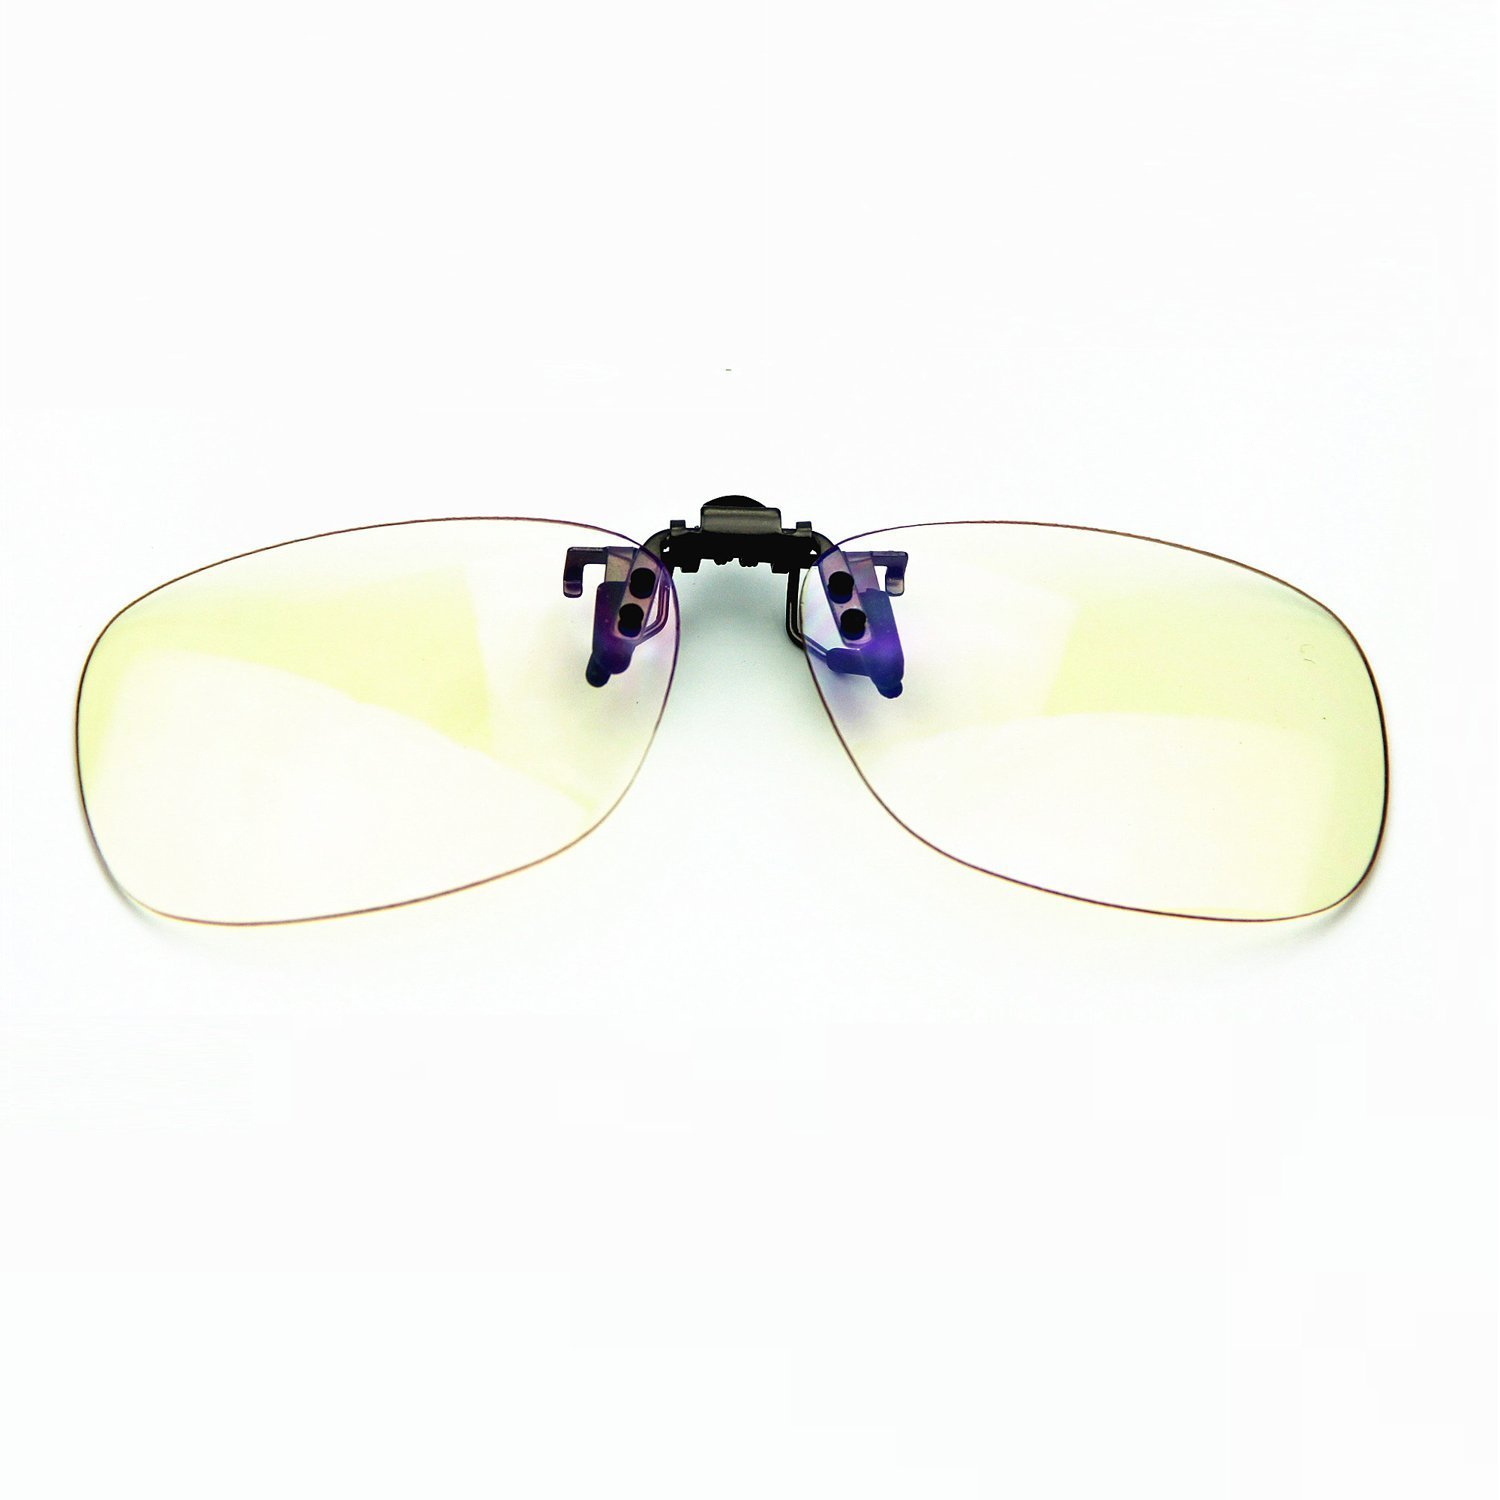 a7a10402b8 Cyxus Blue Light Filter UV Blocking Glasses  Clip On  Anti Eye Strain  (Sleep Better) Anti-Glare